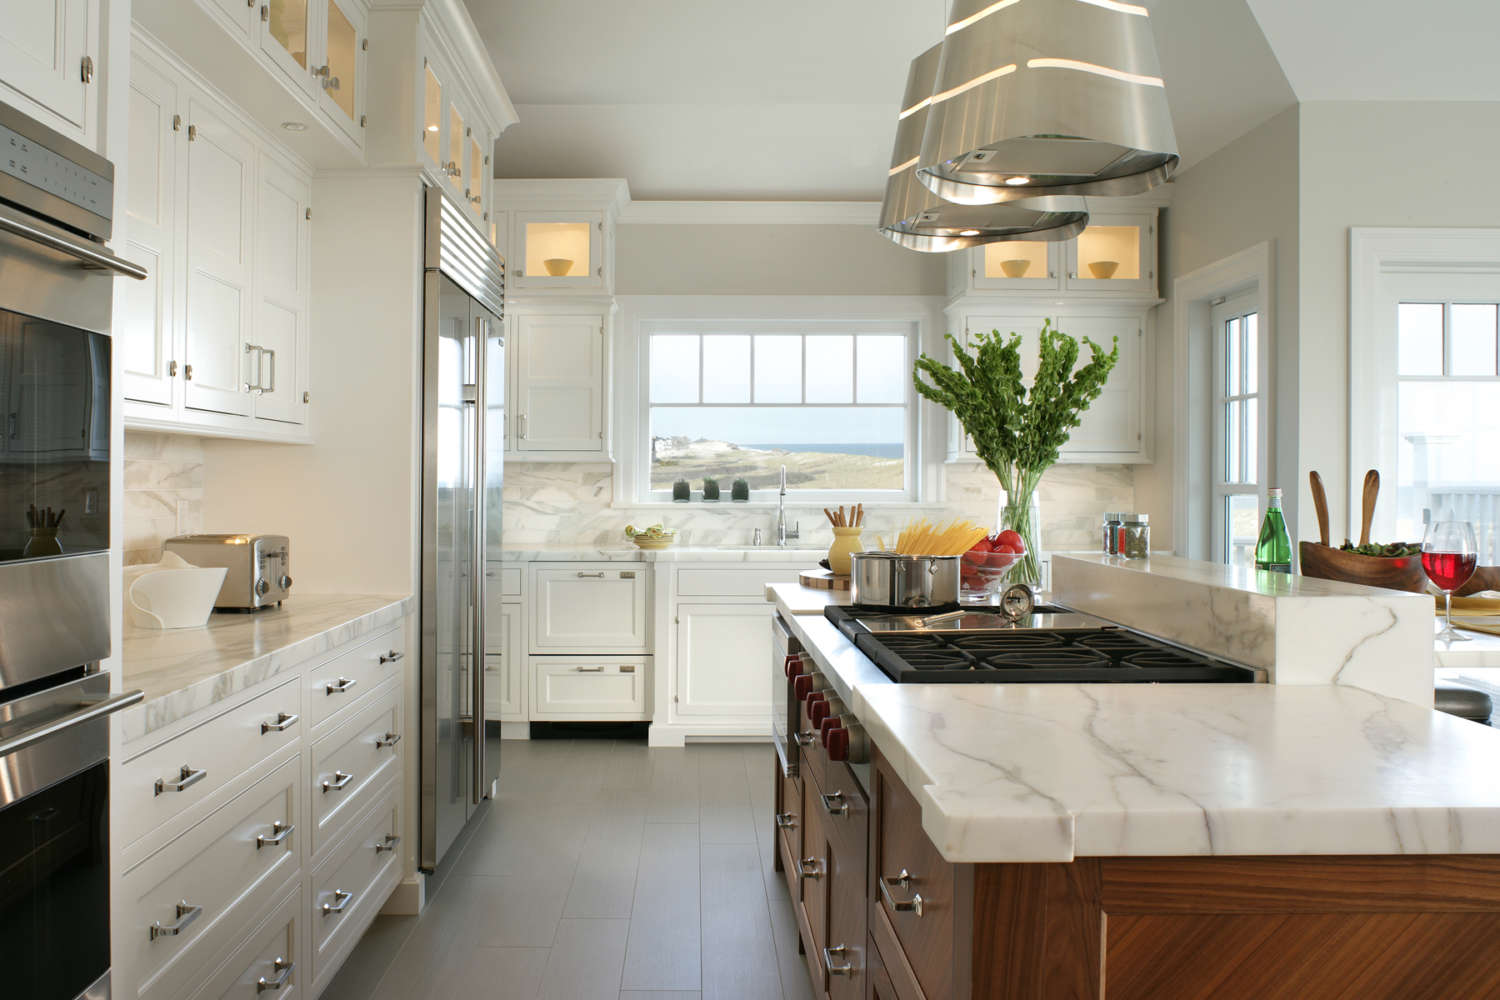 Hamptons kitchen features fully custom white-painted shaker-style, double tiered Bilotta Cabinetry with lit glass-front cabinets on top. The kitchen also incorporates fully custom natural walnut Bilotta cabinetry, white marble countertops and backsplash, and light grey porcelain floor tiles. Design by Daniel Popescu of Bilotta Kitchens.